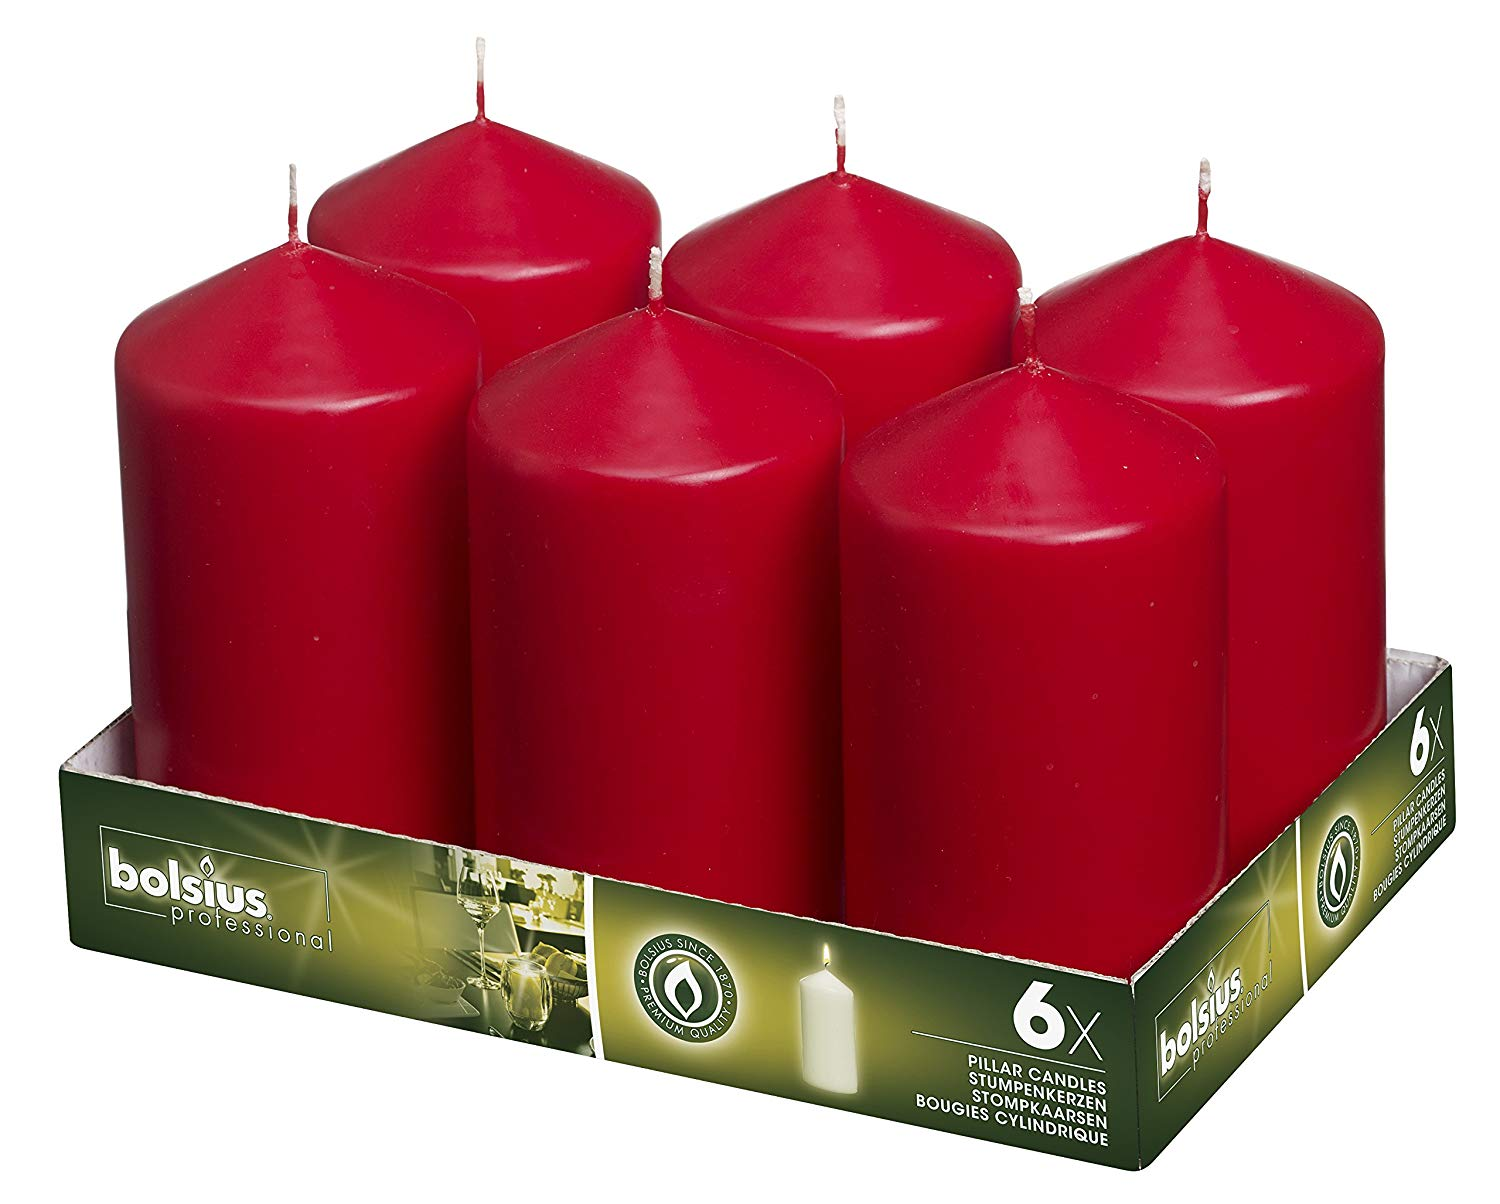 Red Pillar Wedding Candles 3 inch x 6 inch Set of 6 | BOLSIUS